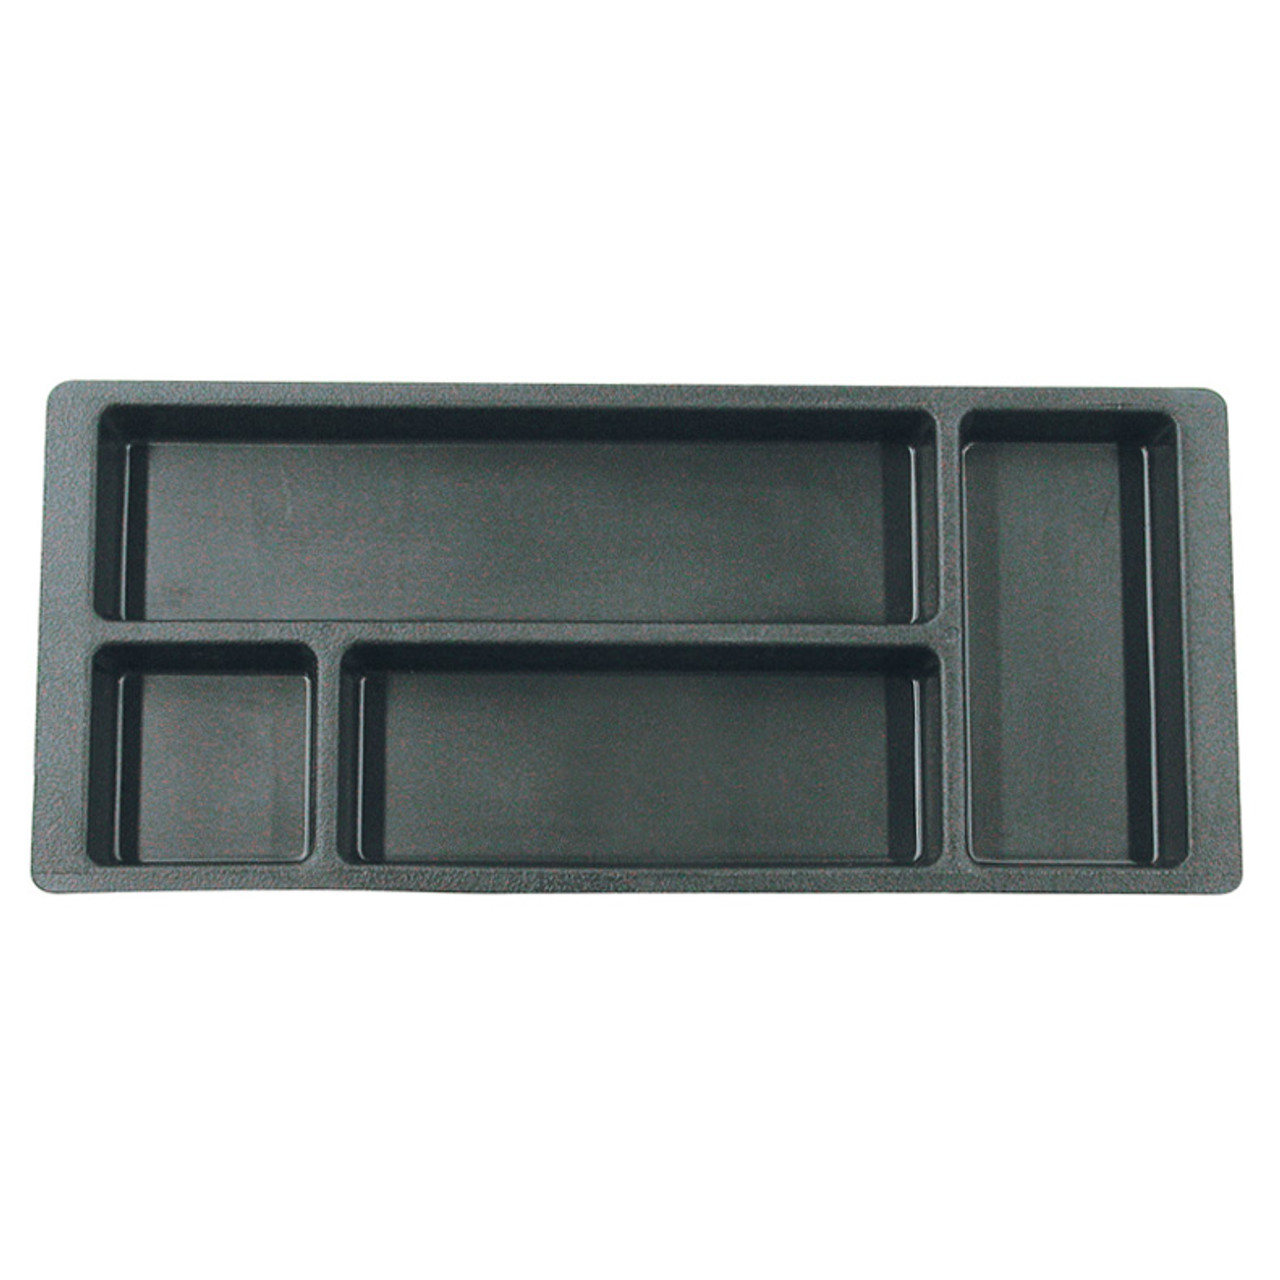 Pencil Tray Drawer Insert Harbor City Supply